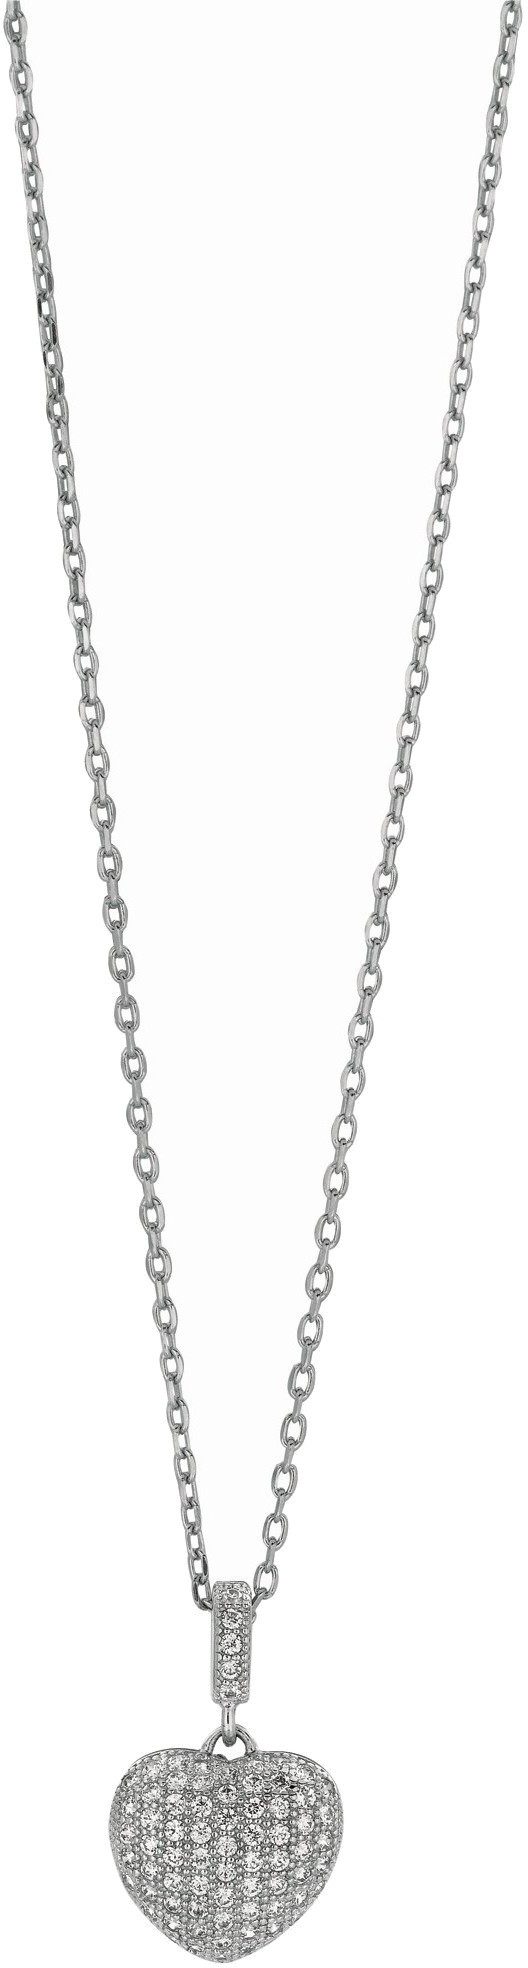 "18"" Rhodium Plated 925 Sterling Silver 1.1mm (0.04"") Cable Chain w/ Lobster Clasp & 12mm Heart Clear Cubic Zirconia (CZ) Pendant"